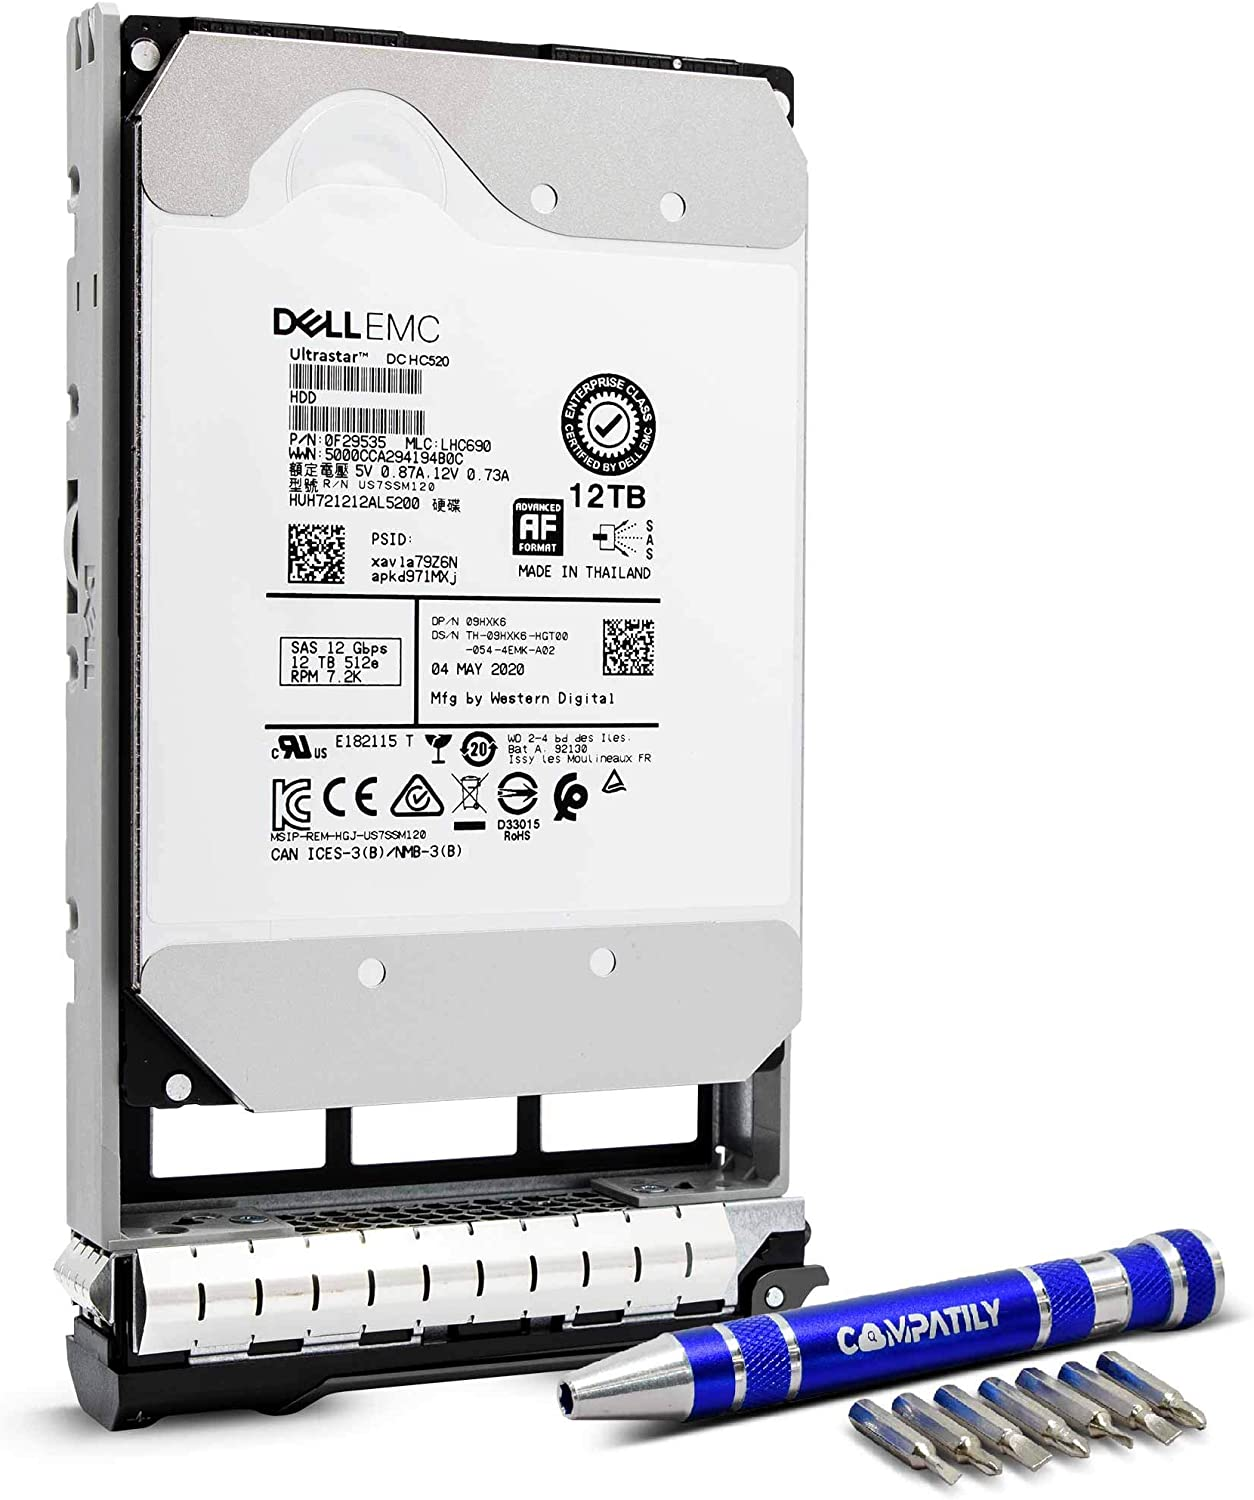 Dell 400-AUTD 12TB 7200 RPM 512e SAS 12Gb/s 3.5-Inch Internal HDD in 13G Hard Drive Tray Bundle with Compatily Screwdriver